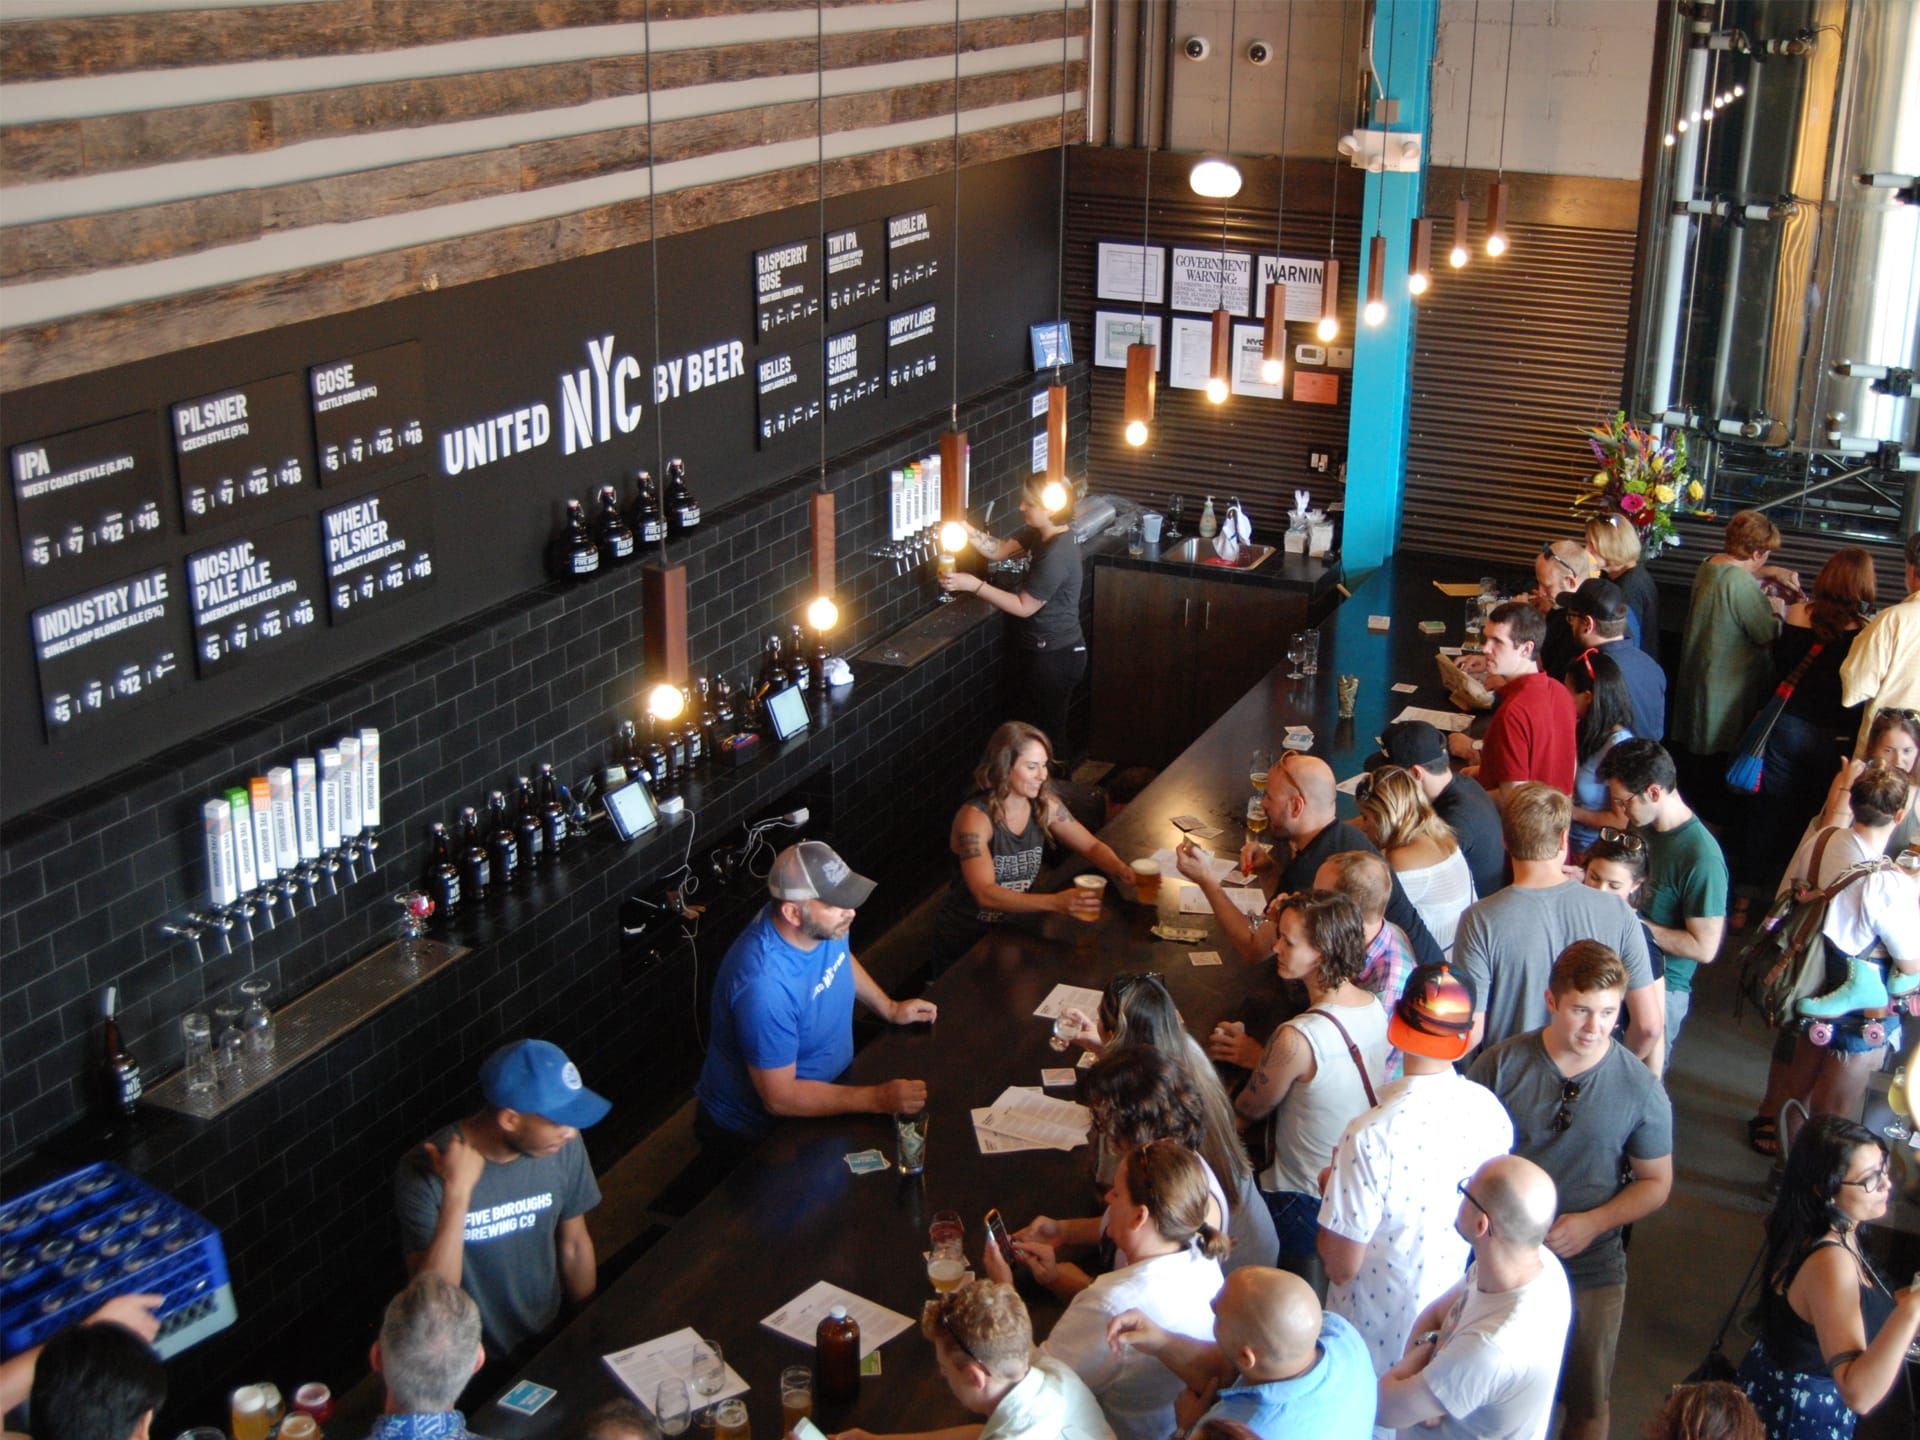 Aerial view of people at the brewery